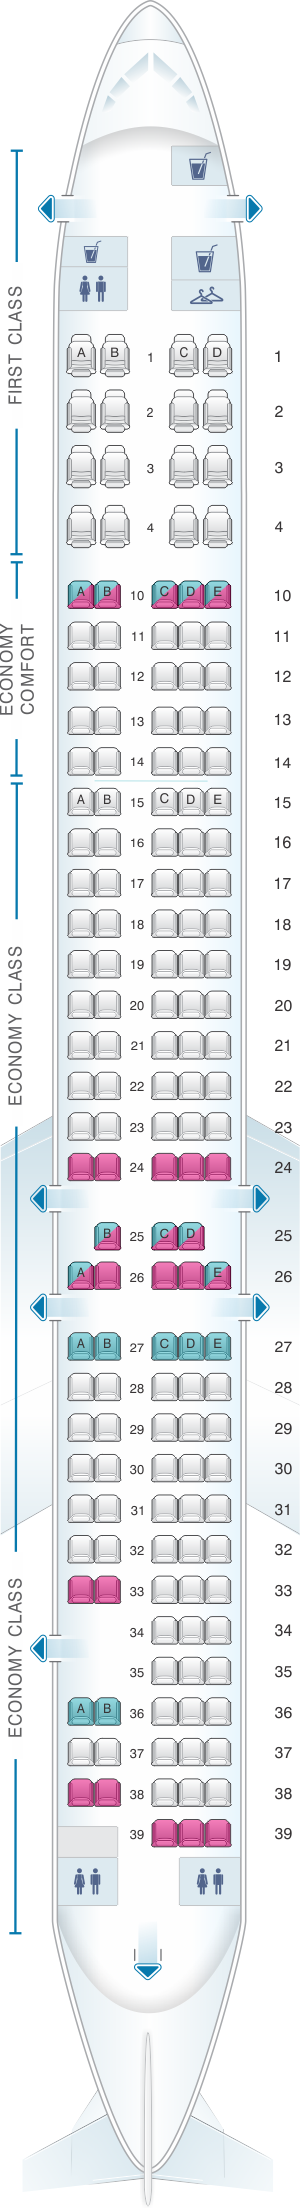 Seat map for Delta Air Lines McDonnell Douglas MD 90